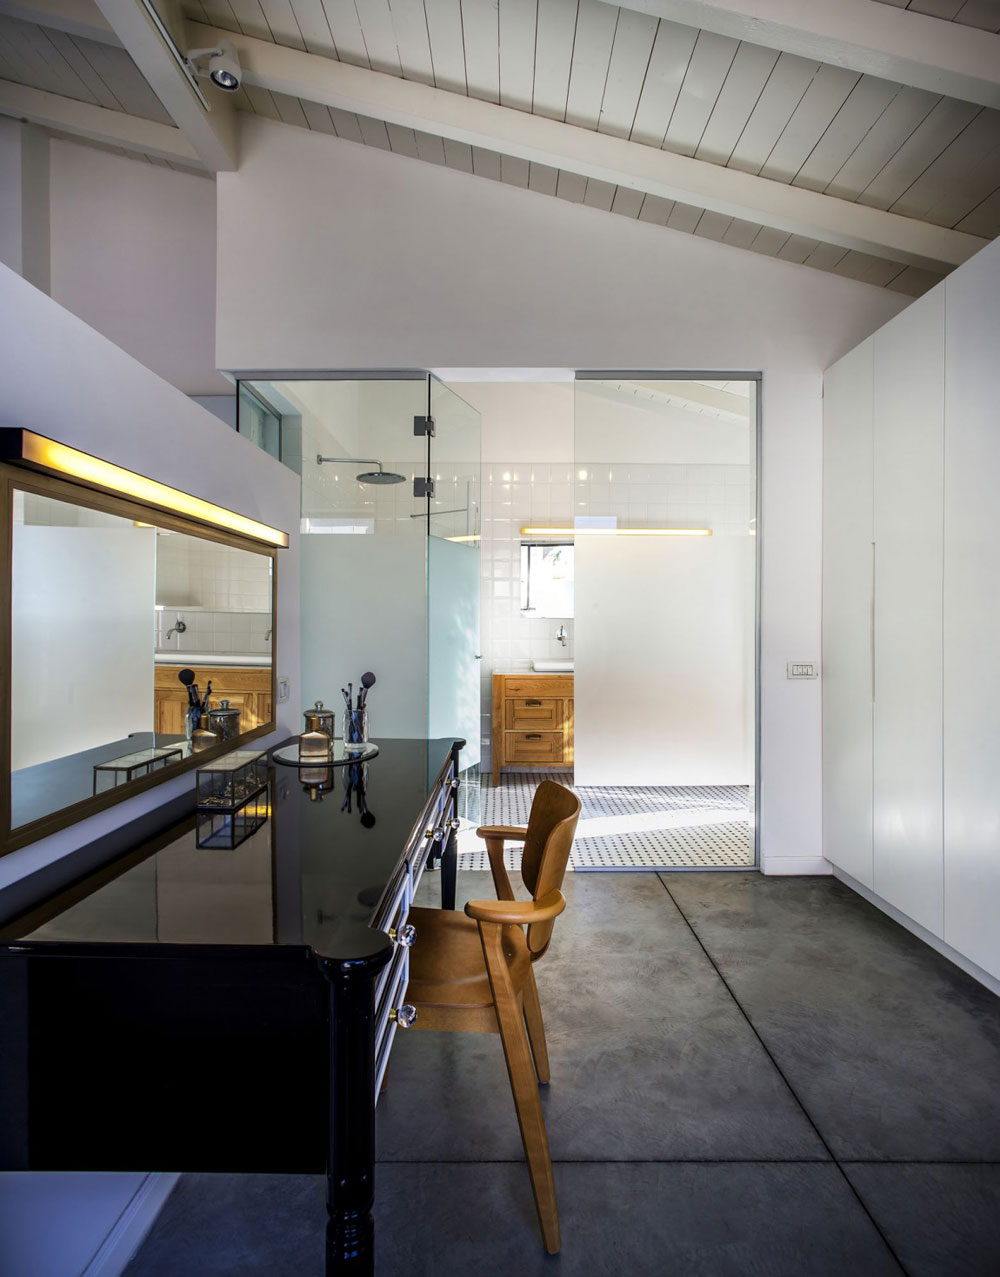 Attainable-homes-renovation-ideas-to-try-1 attainable-homes-renovation-ideas to try